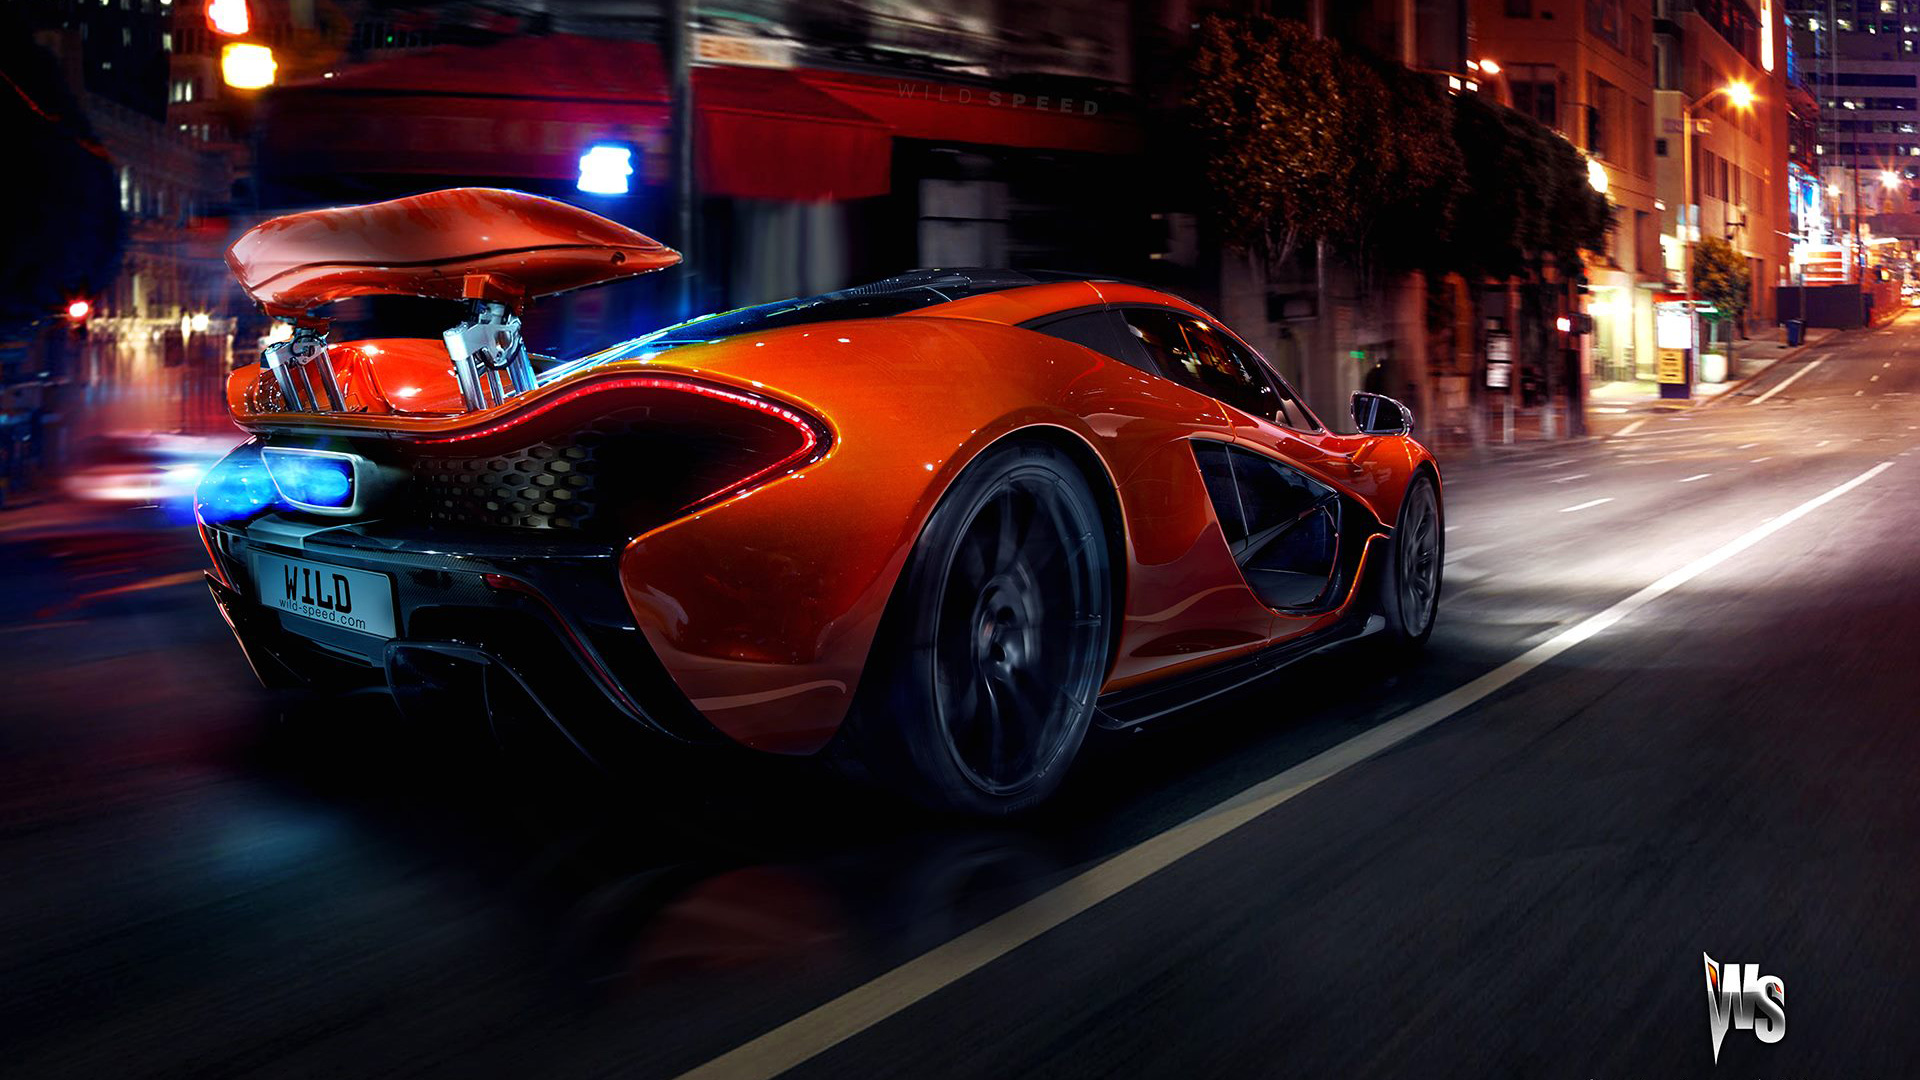 Mclaren P1 Wallpaper Hd >> Mclaren P1 Hd Wallpaper Background Image 1920x1080 Id 402097